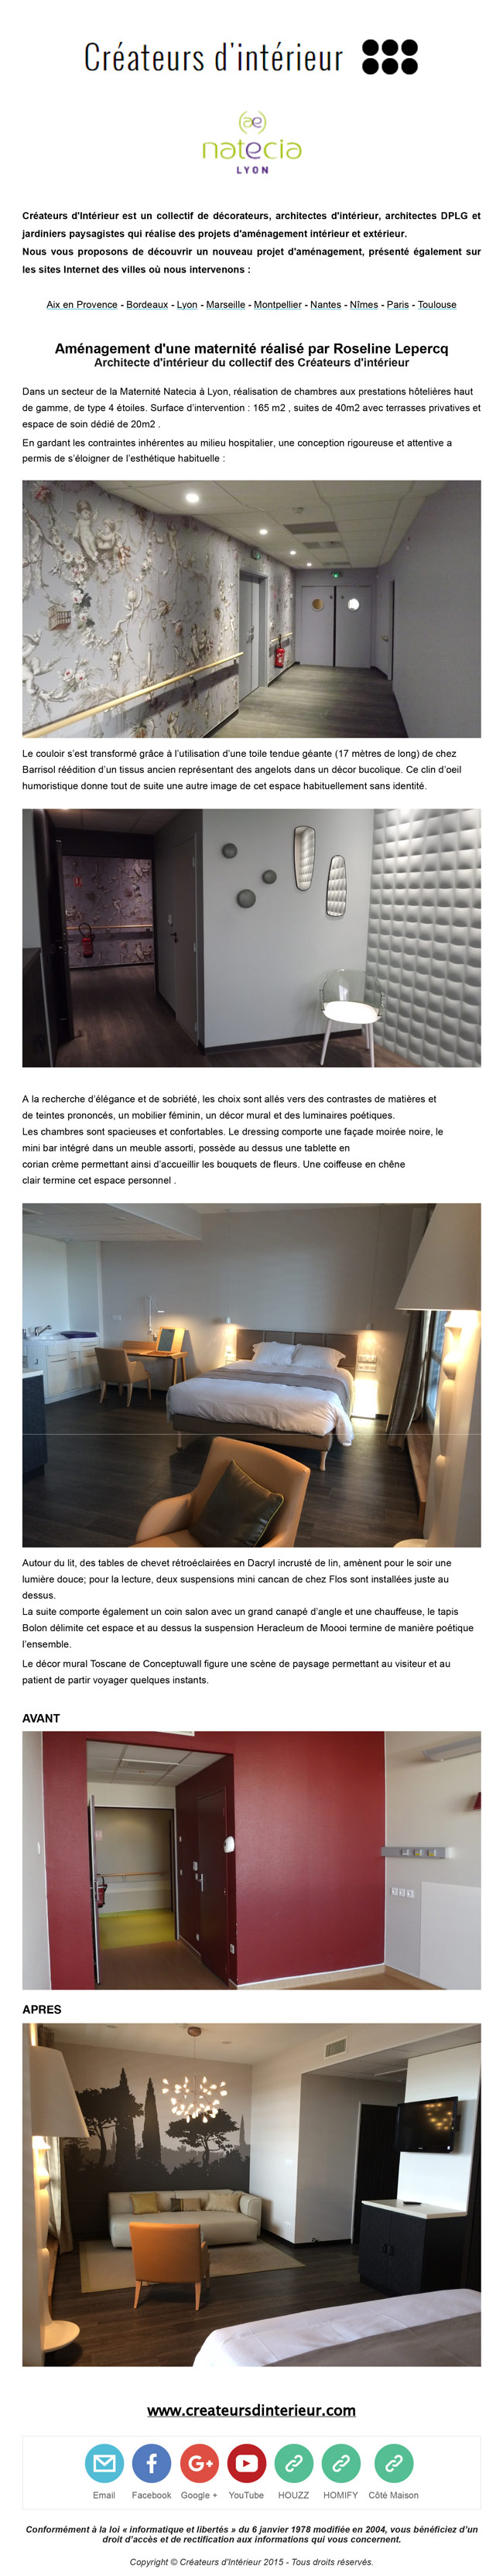 newsletter cr ateurs d 39 int rieur marseille. Black Bedroom Furniture Sets. Home Design Ideas